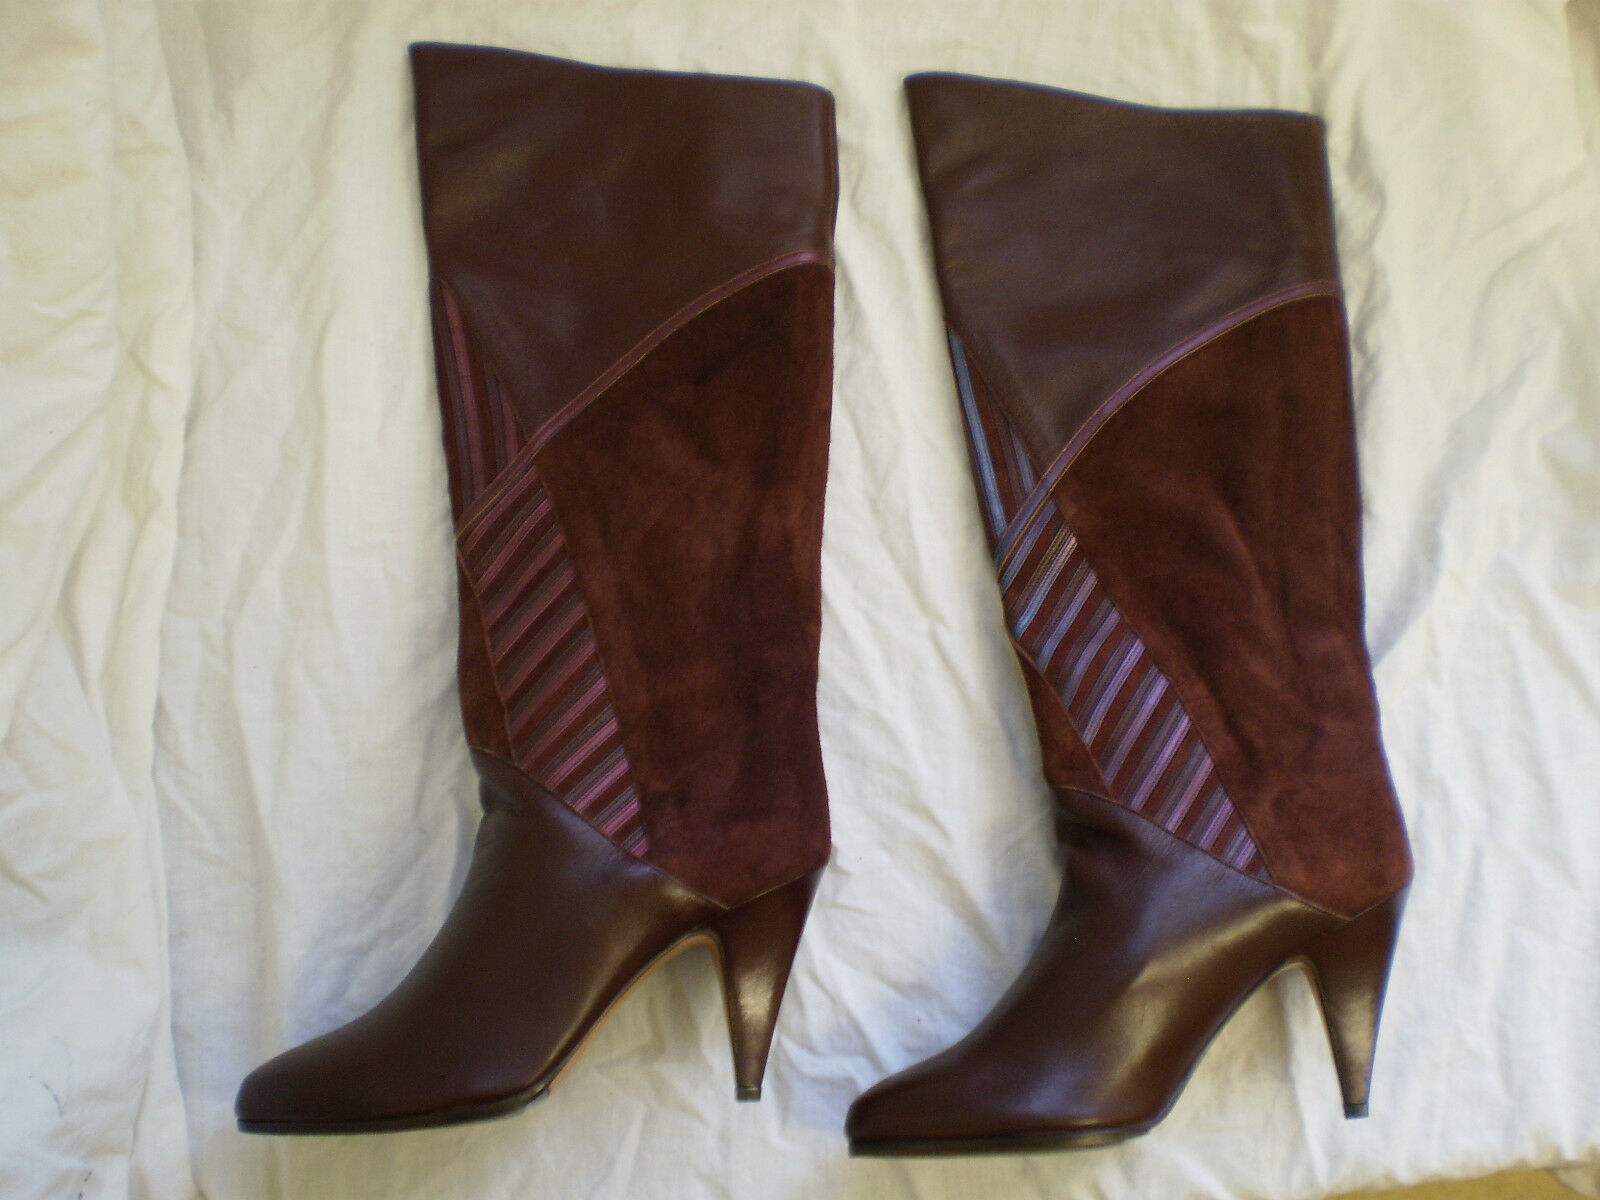 MEDIRA Knee High Boots Brown Leather suede Pull On Womens New Size